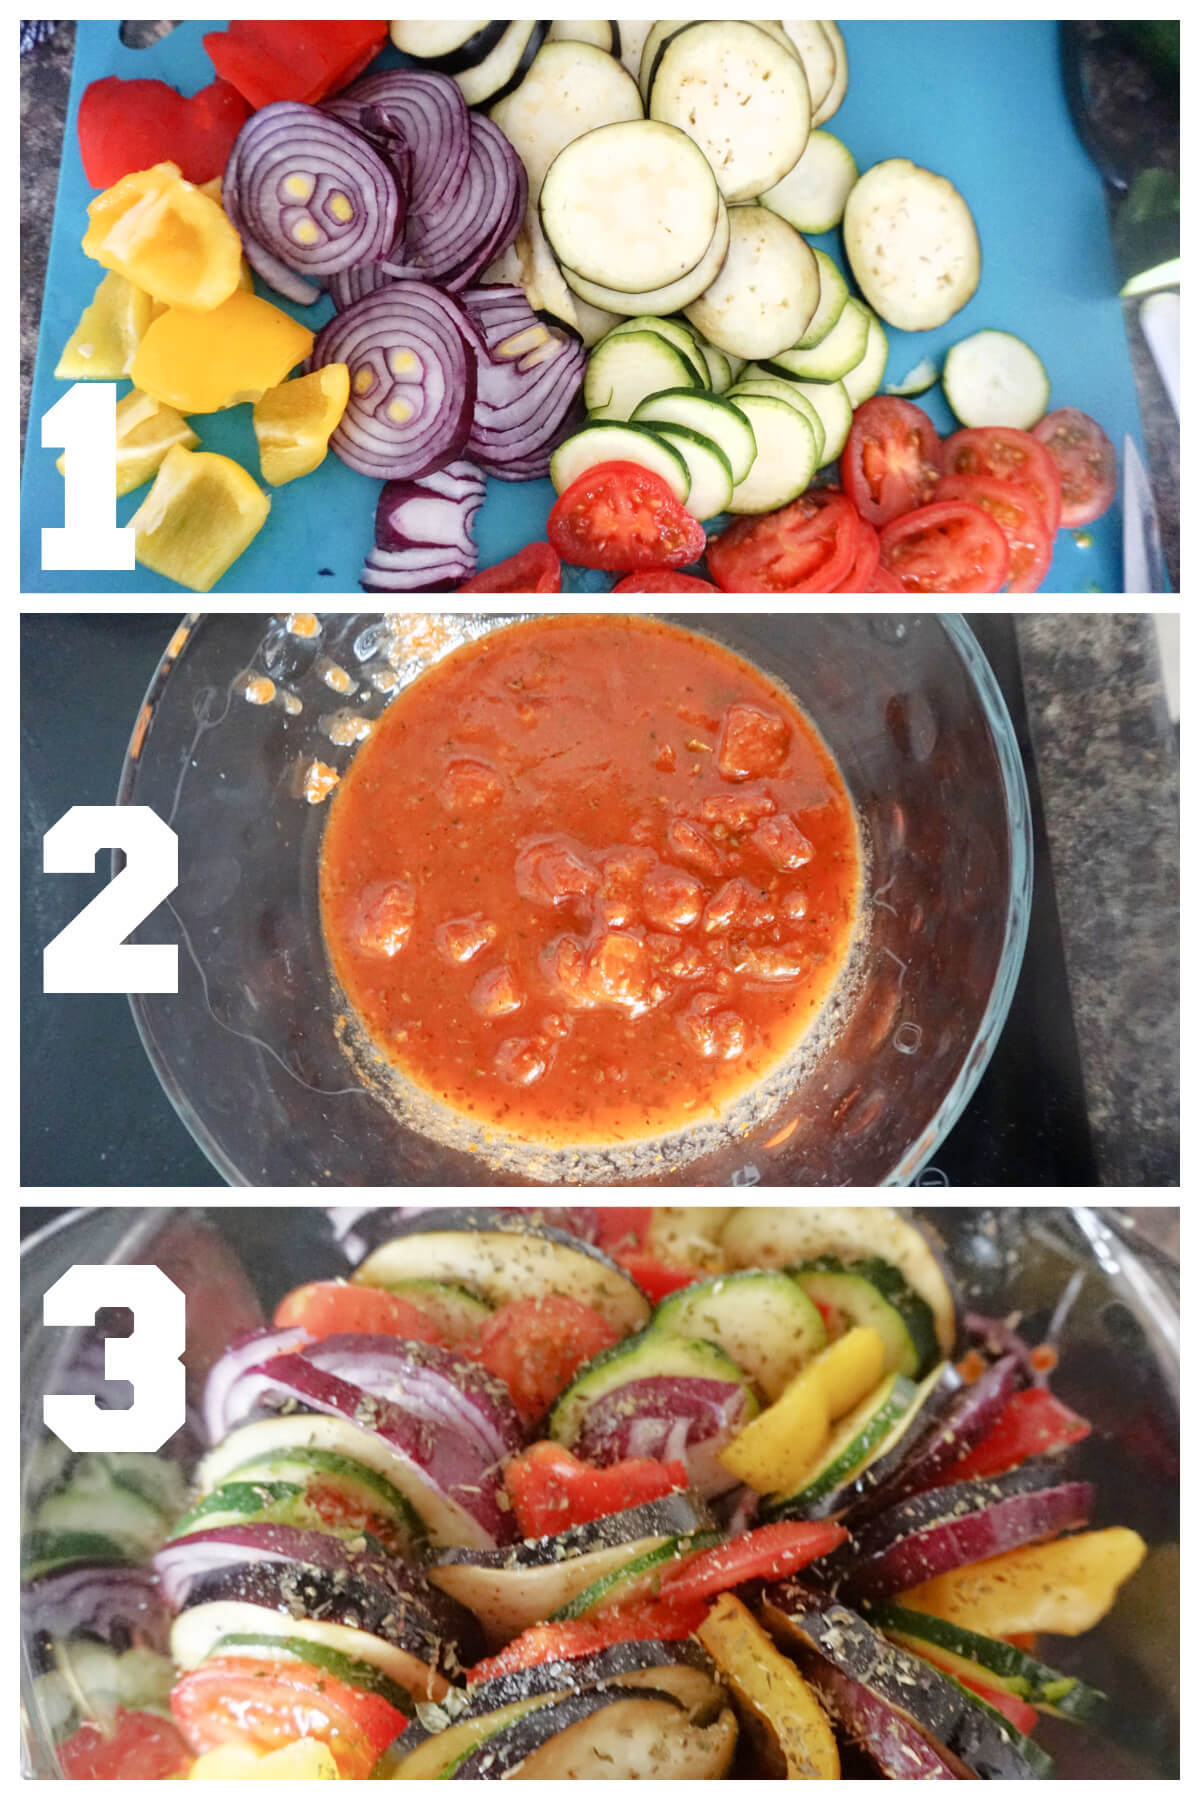 Collage of 3 photos to show how to make baked ratatouille